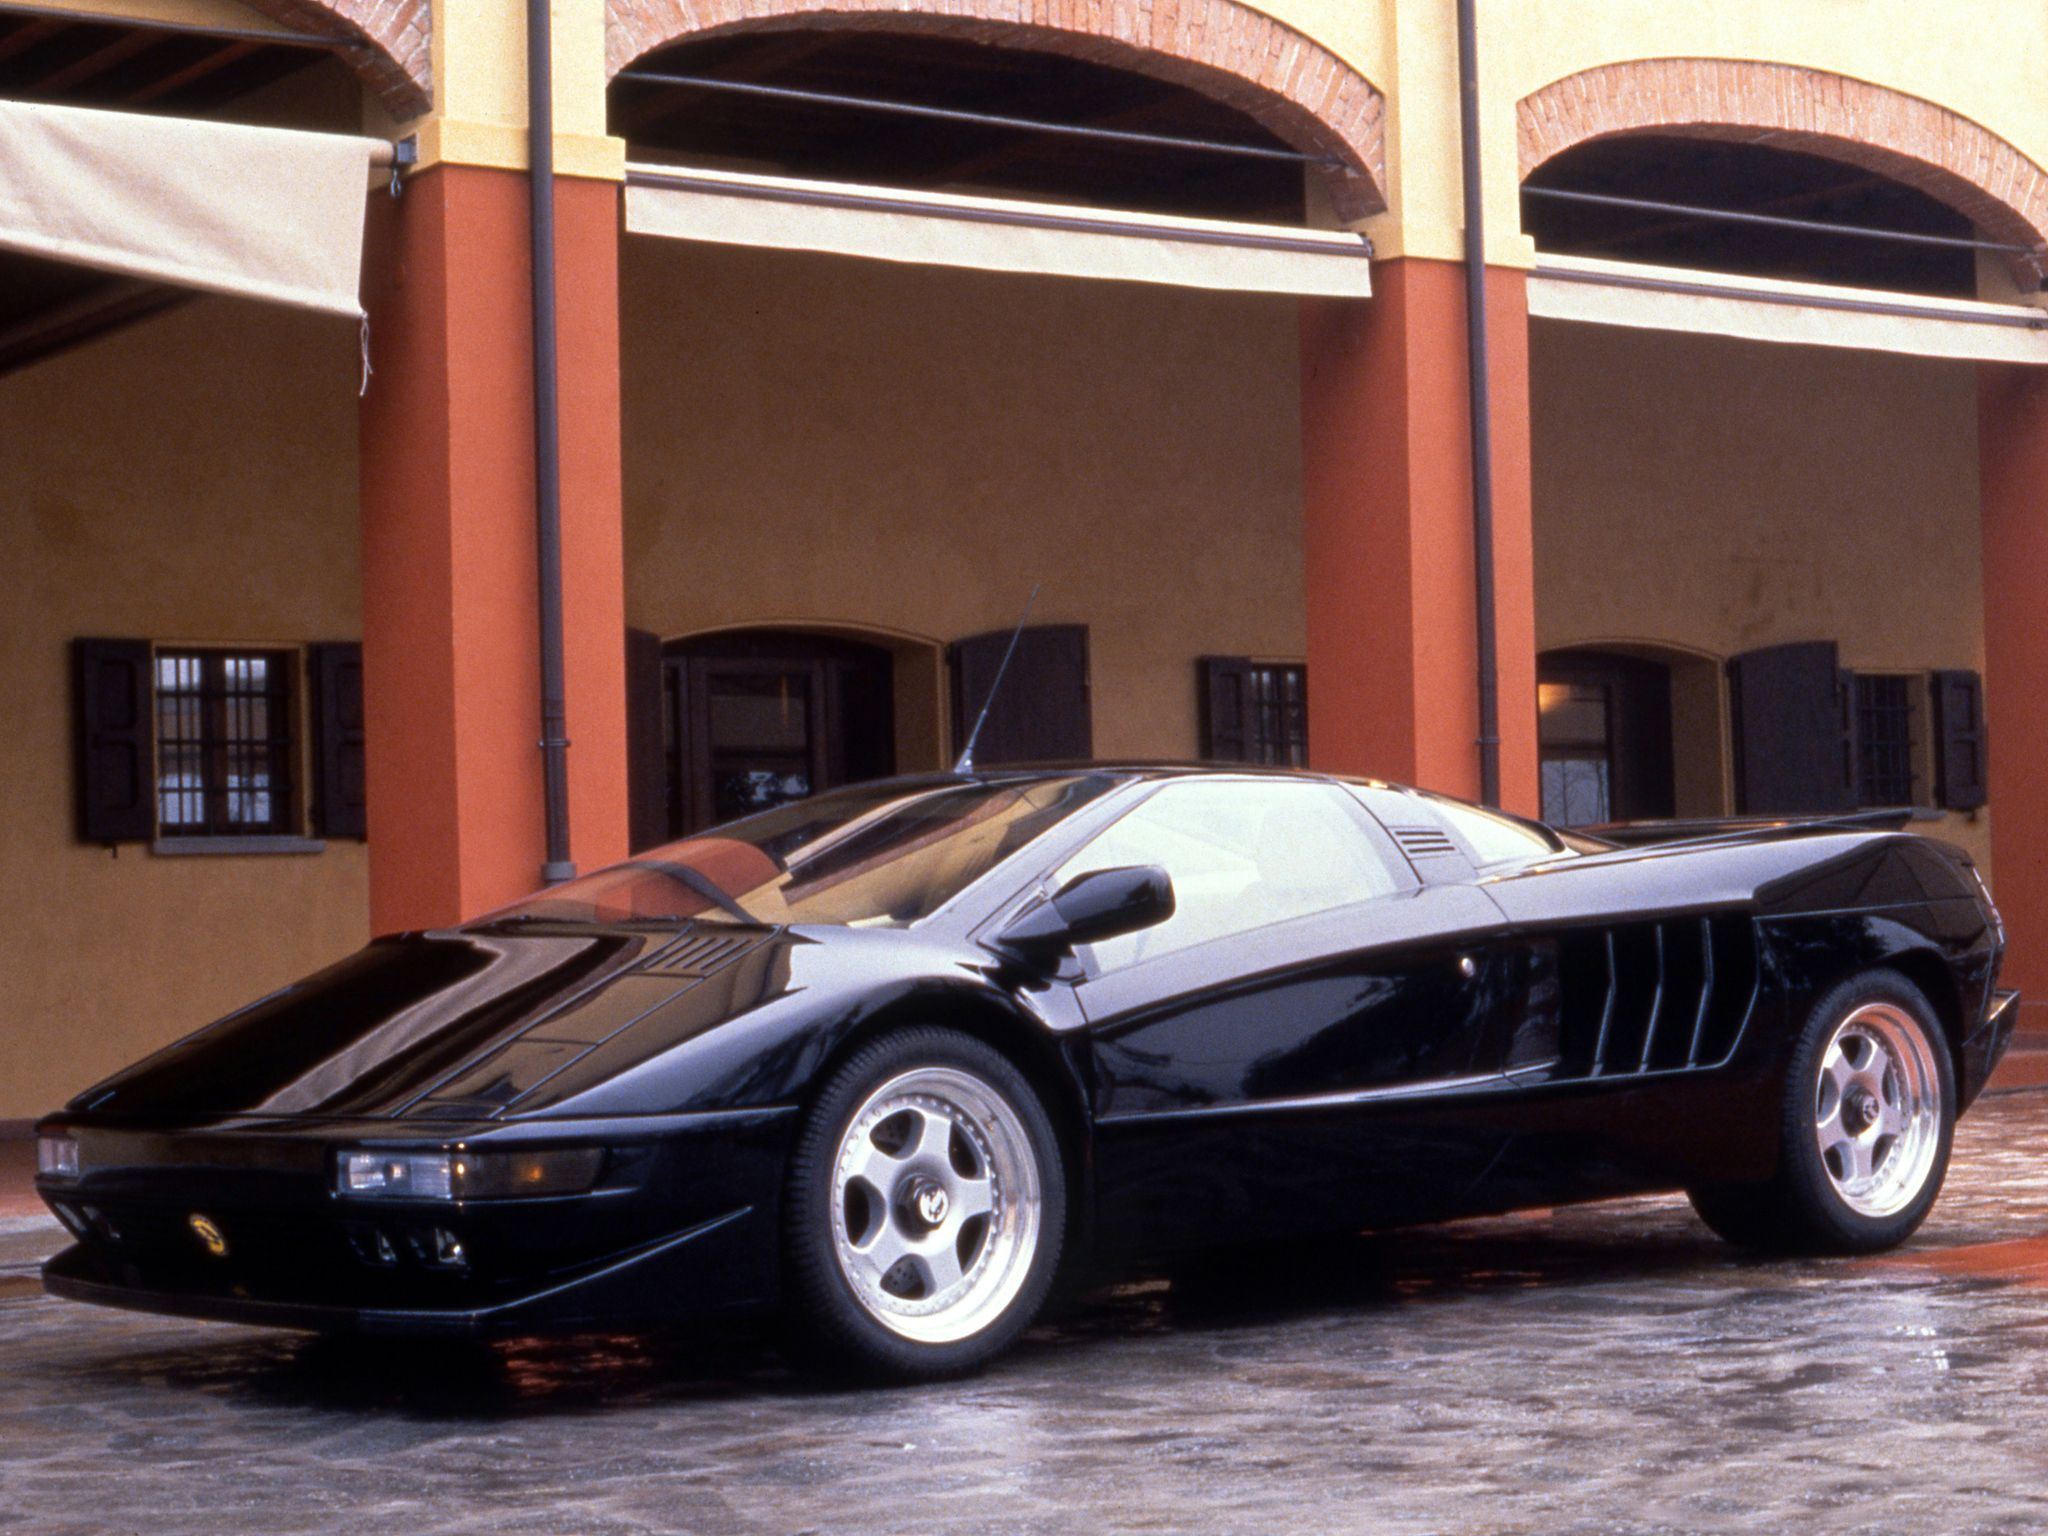 f2f2572eeb39f0a790f46f1188405c0a Elegant Ferrari F 108 Al-mondial 8 Cars Trend